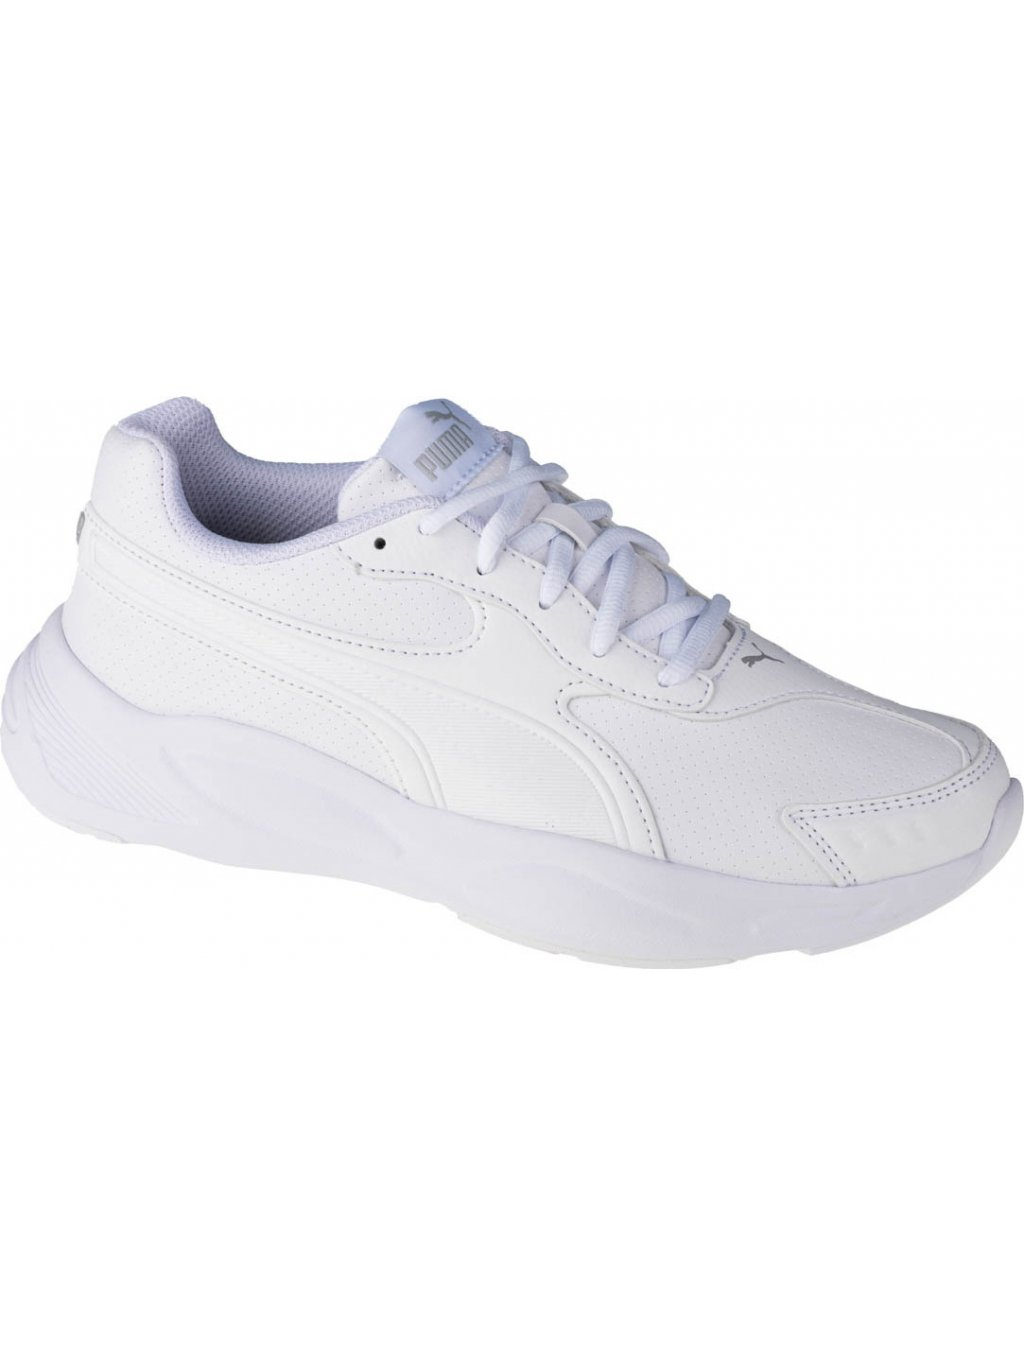 PUMA 90S RUNNER SL JR 372929-01